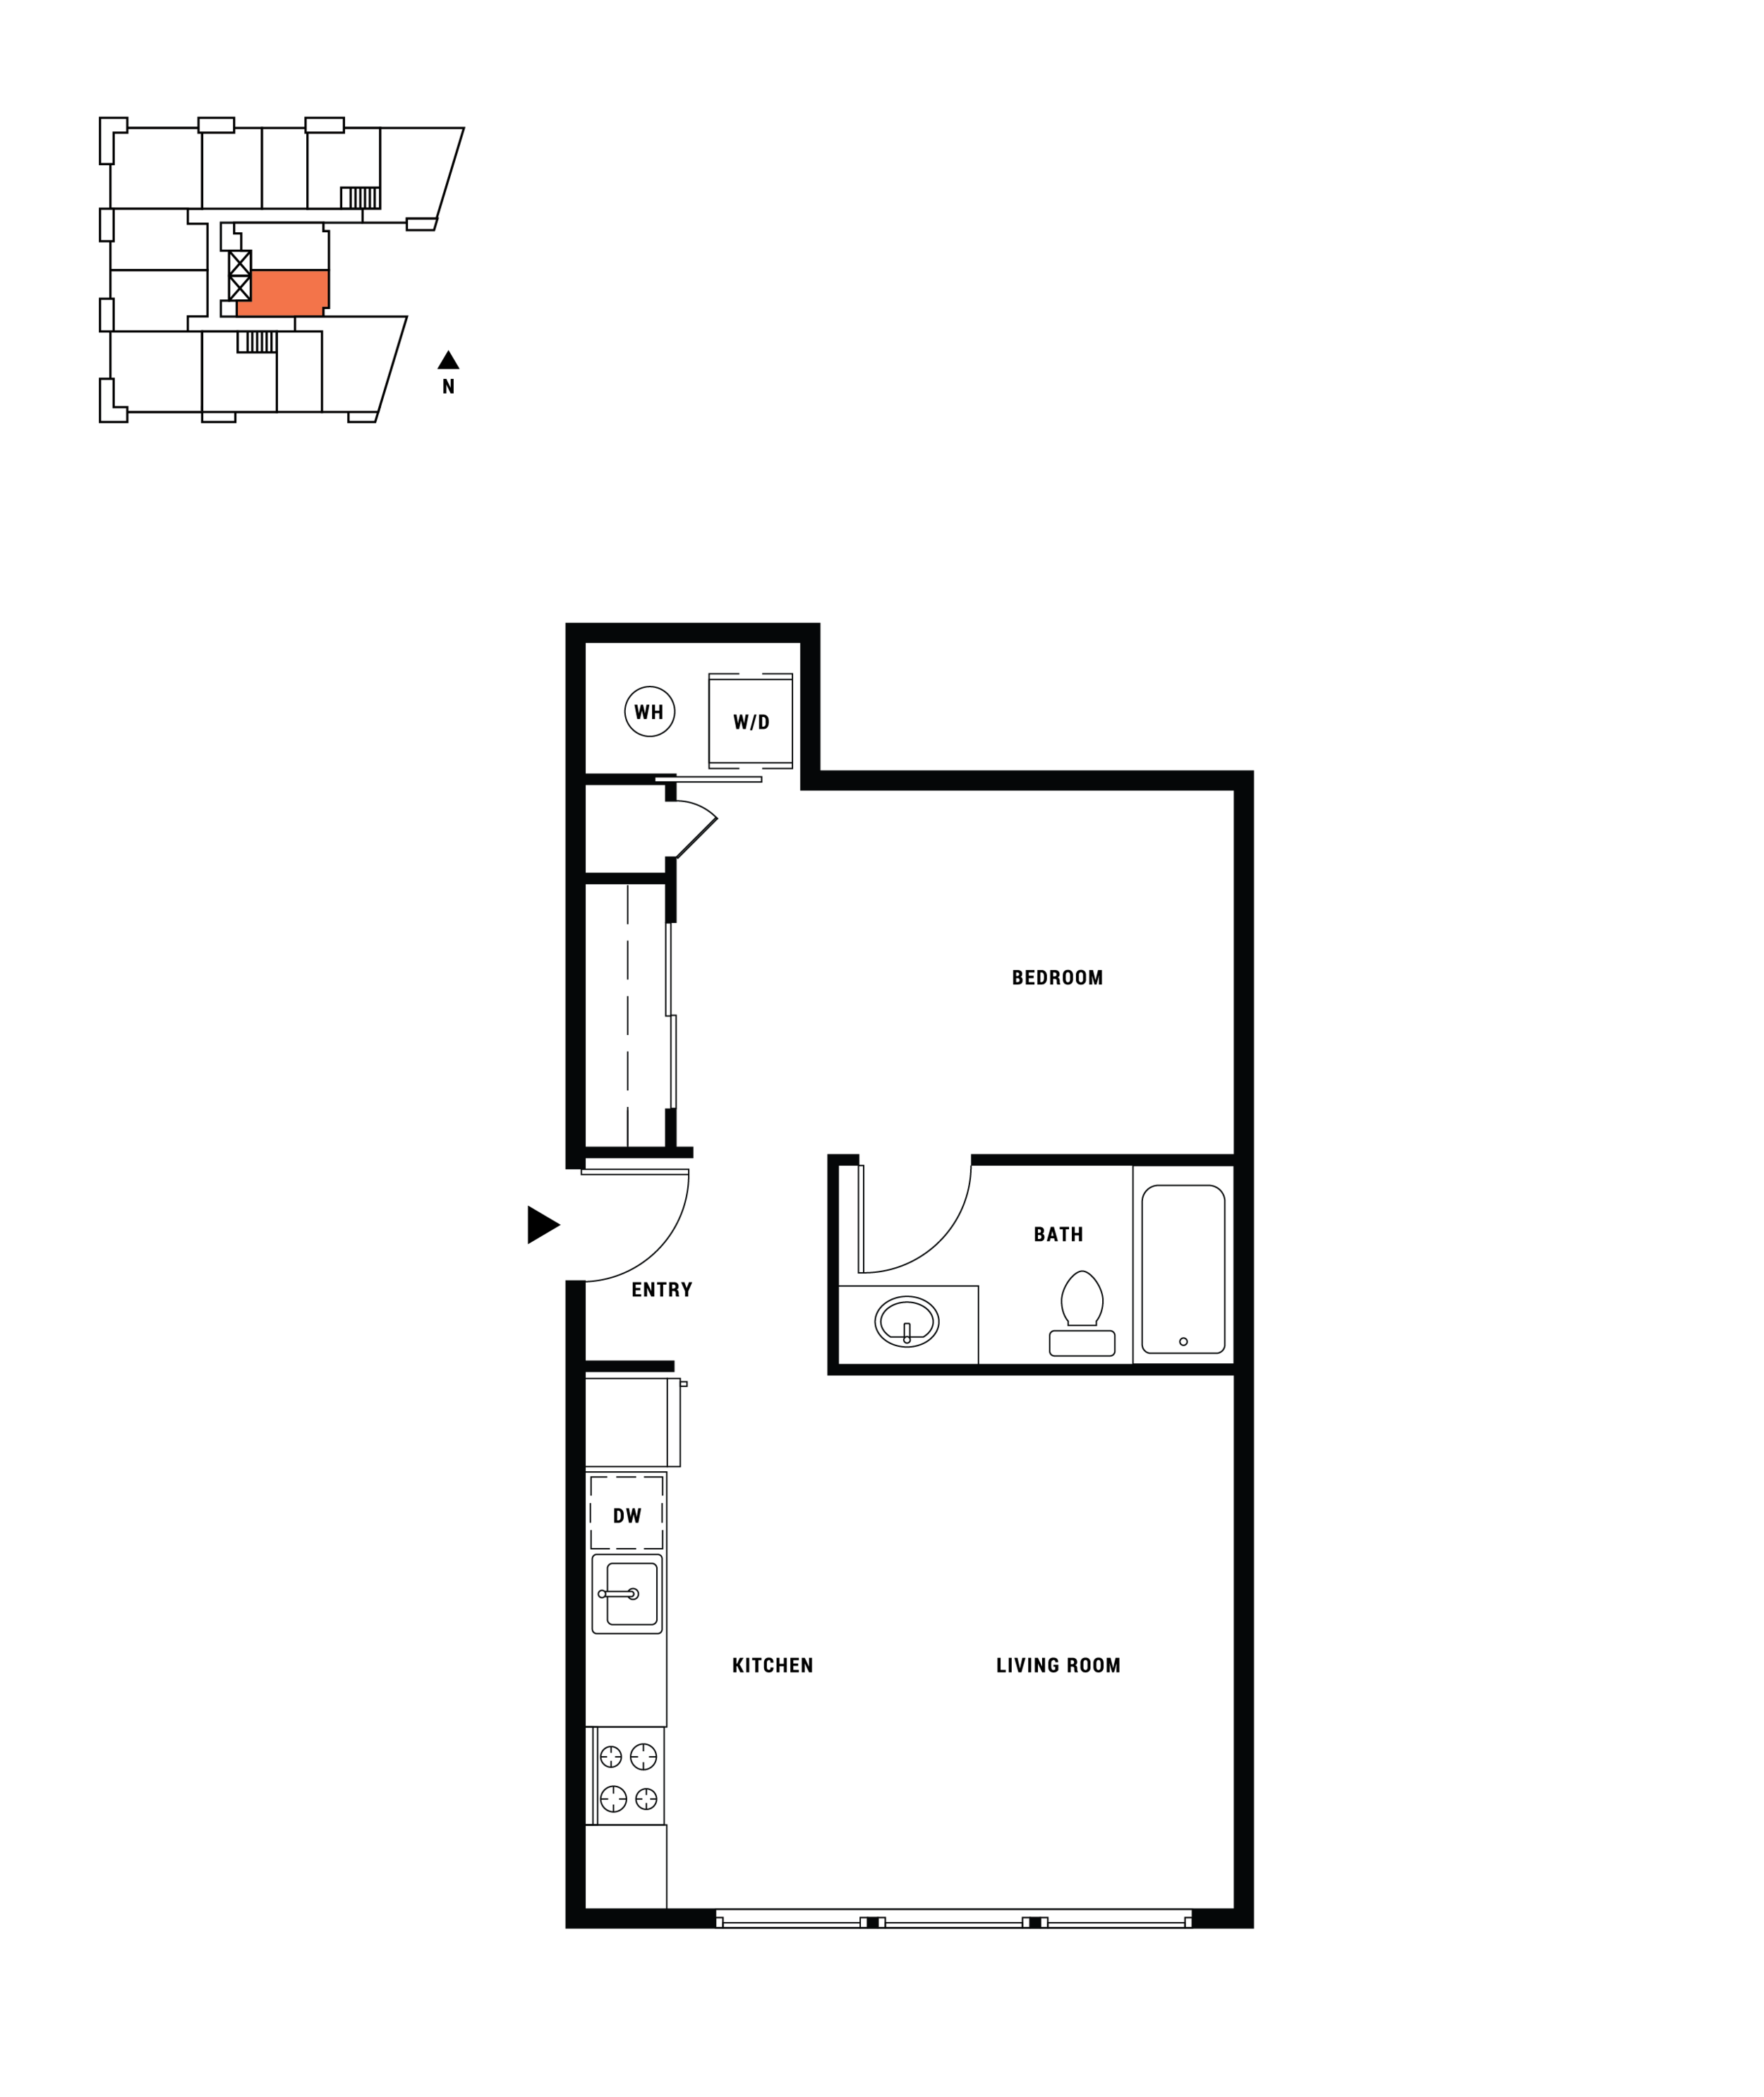 The Slater_Kirkland_Floorplans_no_logo-02.png